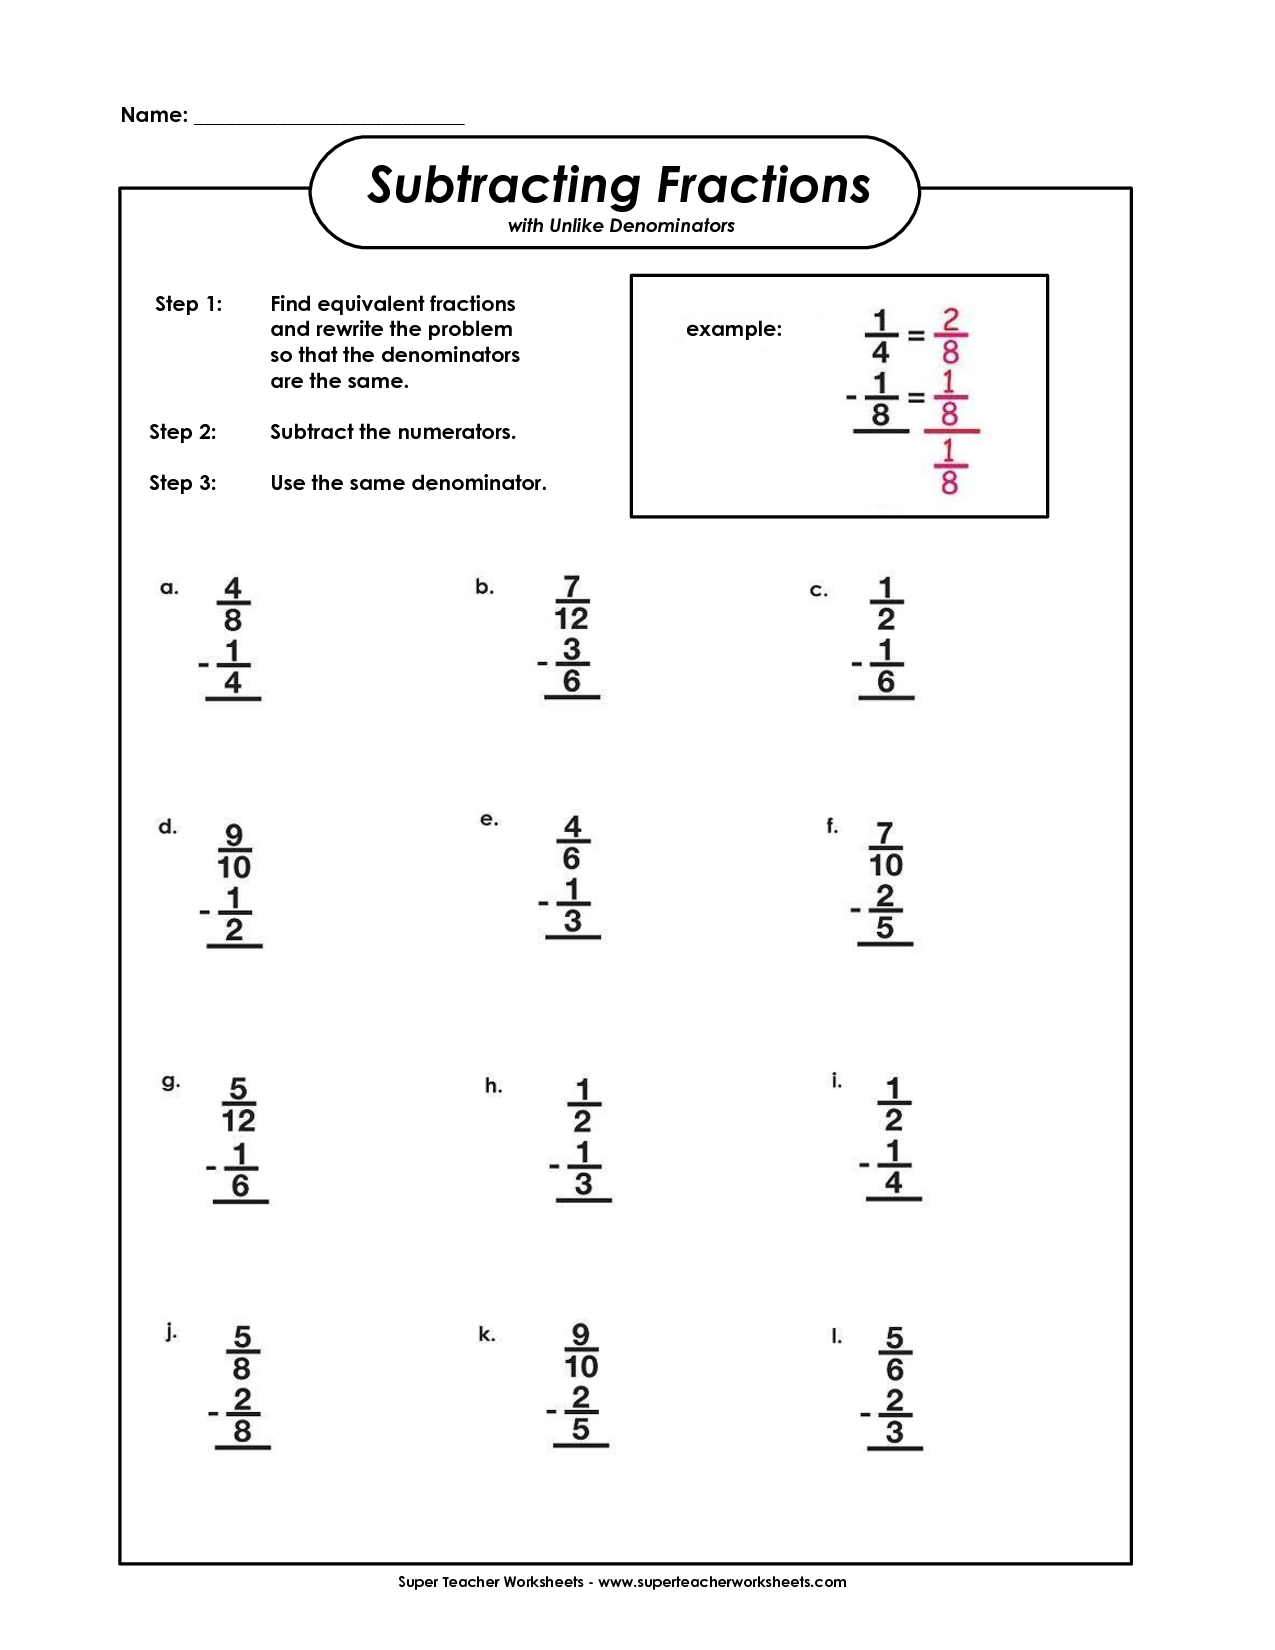 Worksheet 612792 Adding and Subtracting Fractions with Like and – Subtracting Fractions with Like Denominators Worksheet